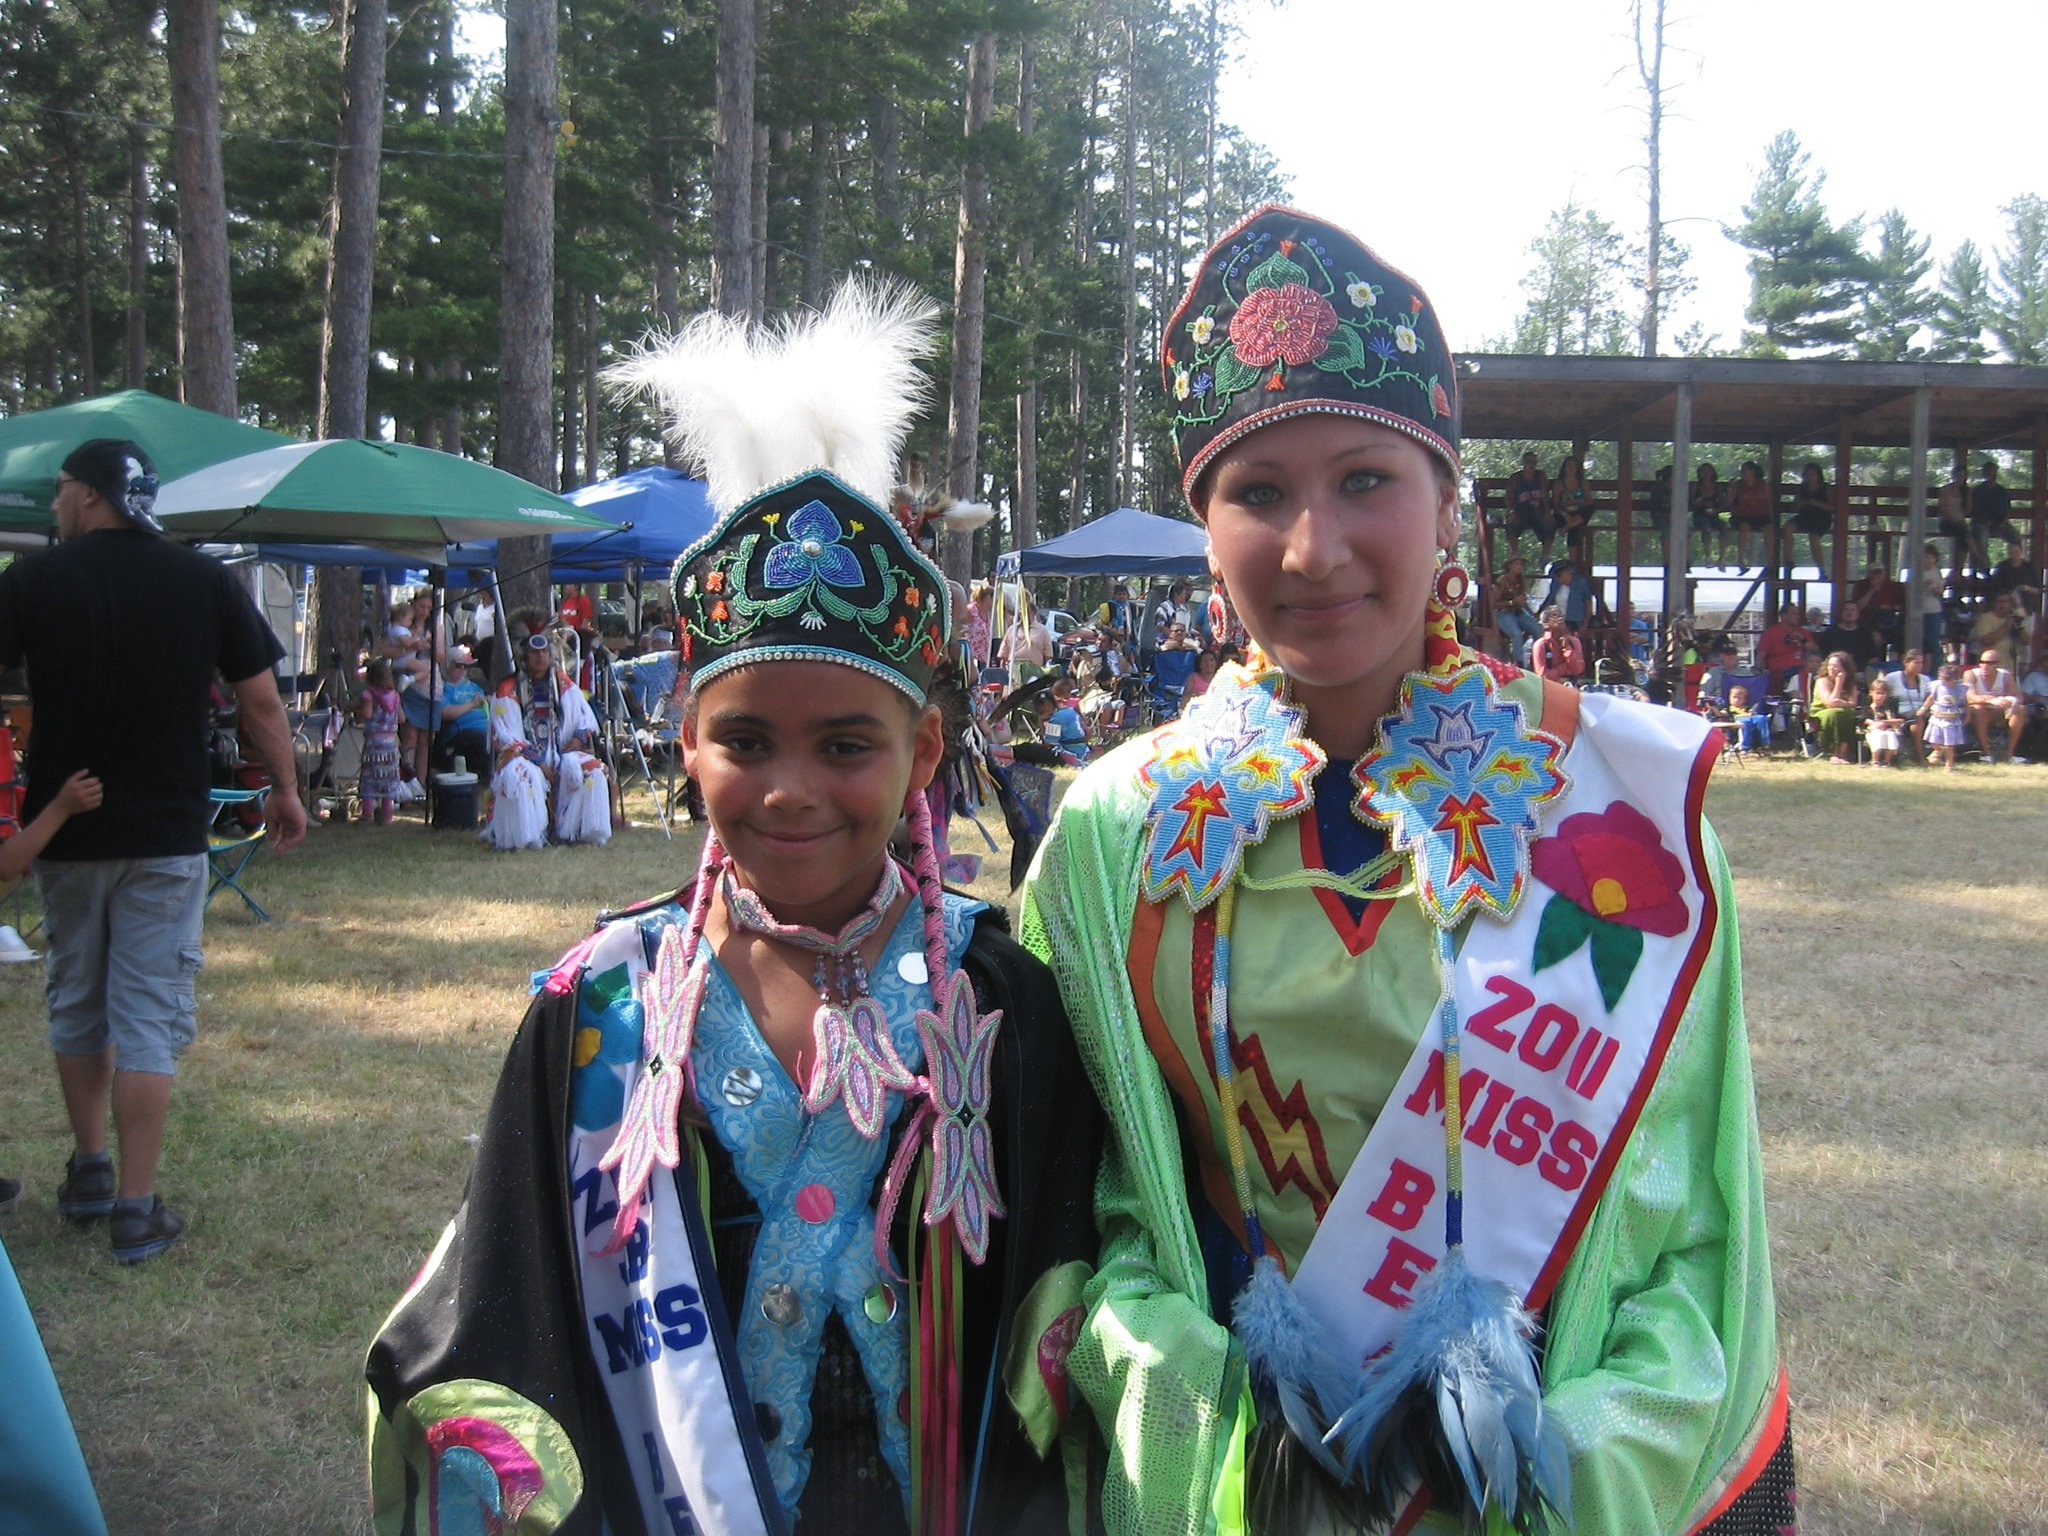 Melissa Maki's beaded work blended beautifully with the traditional attire the young women wore at a Pow Wow. (Picture provided by Melissa Maki)